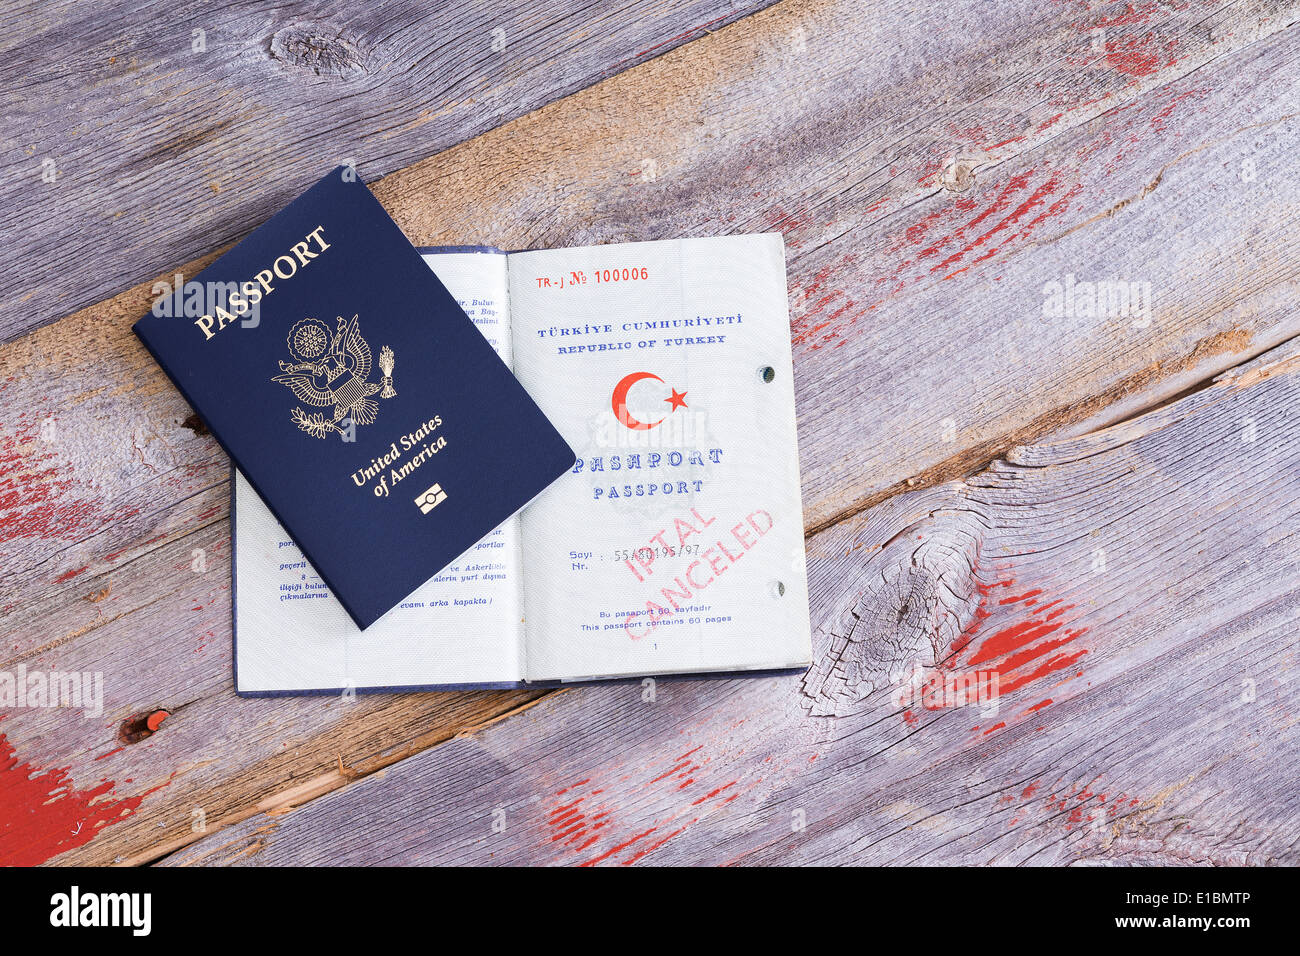 An American and Turkish passport lying on an old wooden table with the Turkish passport opened to reveal a canceled hand stamp - Stock Image